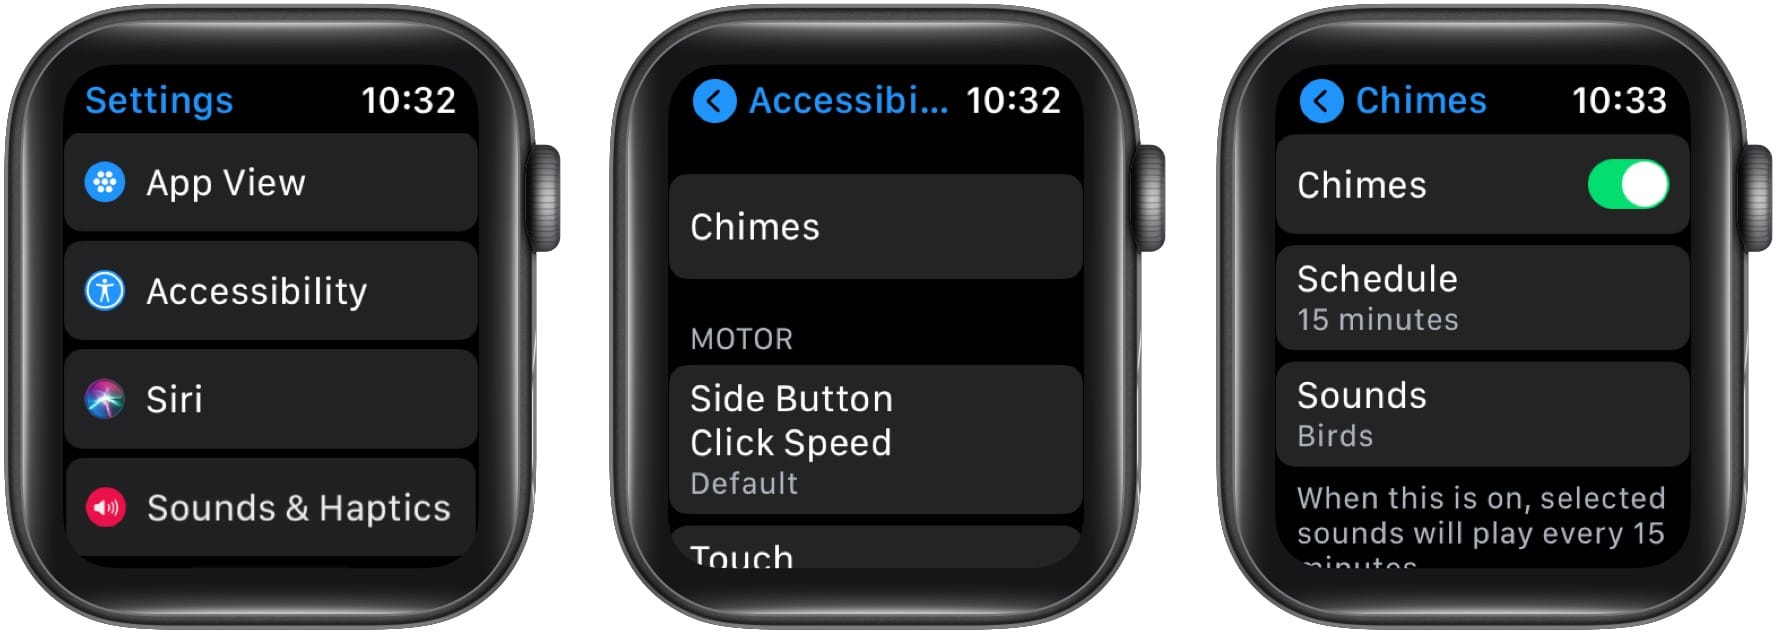 In Apple Watch Accessibility Settings tap Chimes and enable it